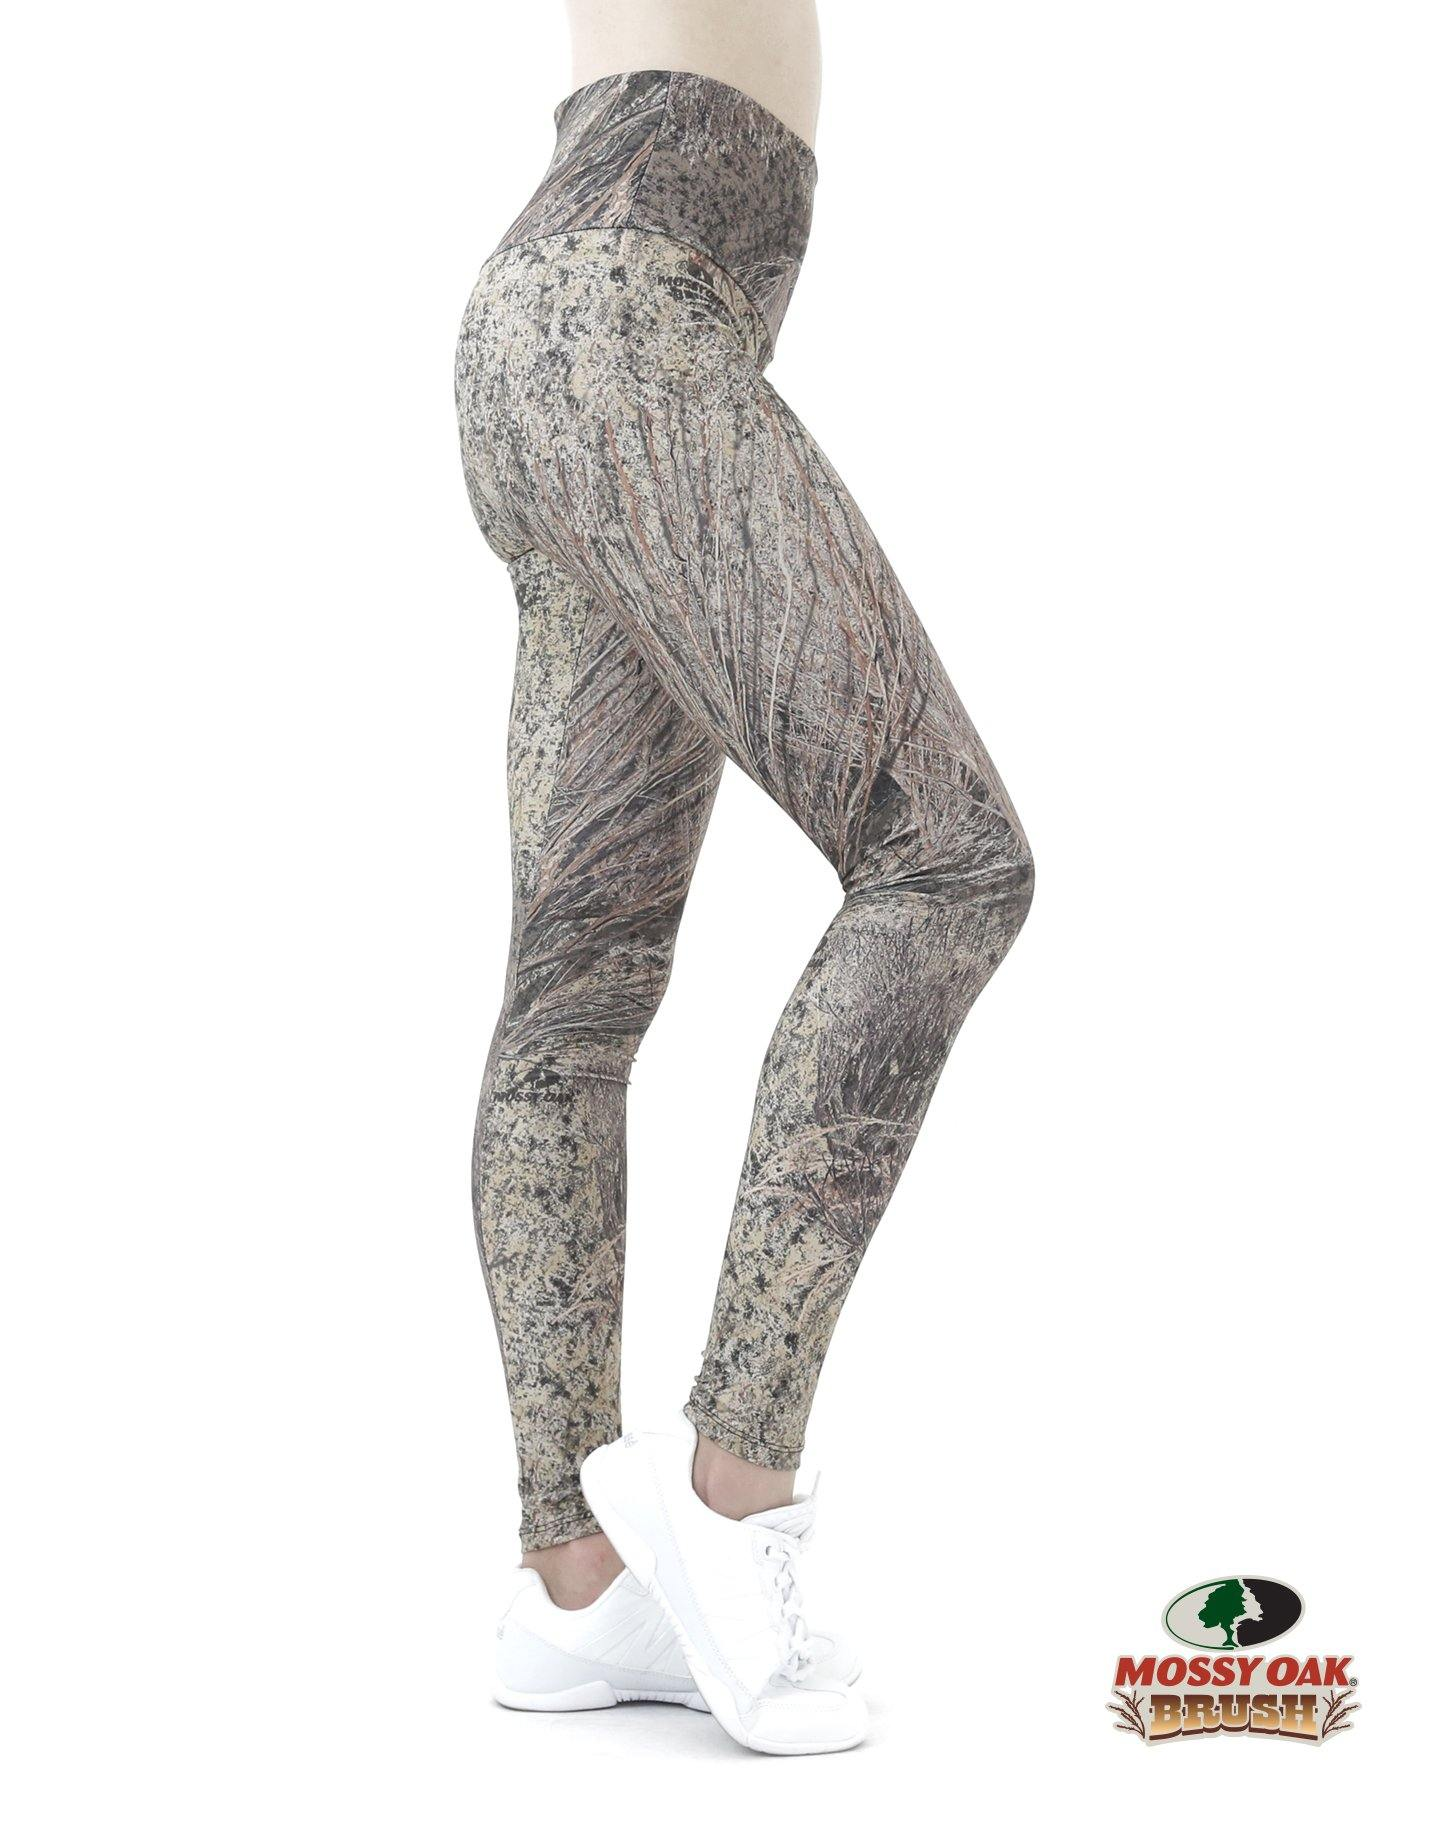 Apsara Leggings High Waist Full Length, Mossy Oak Brush